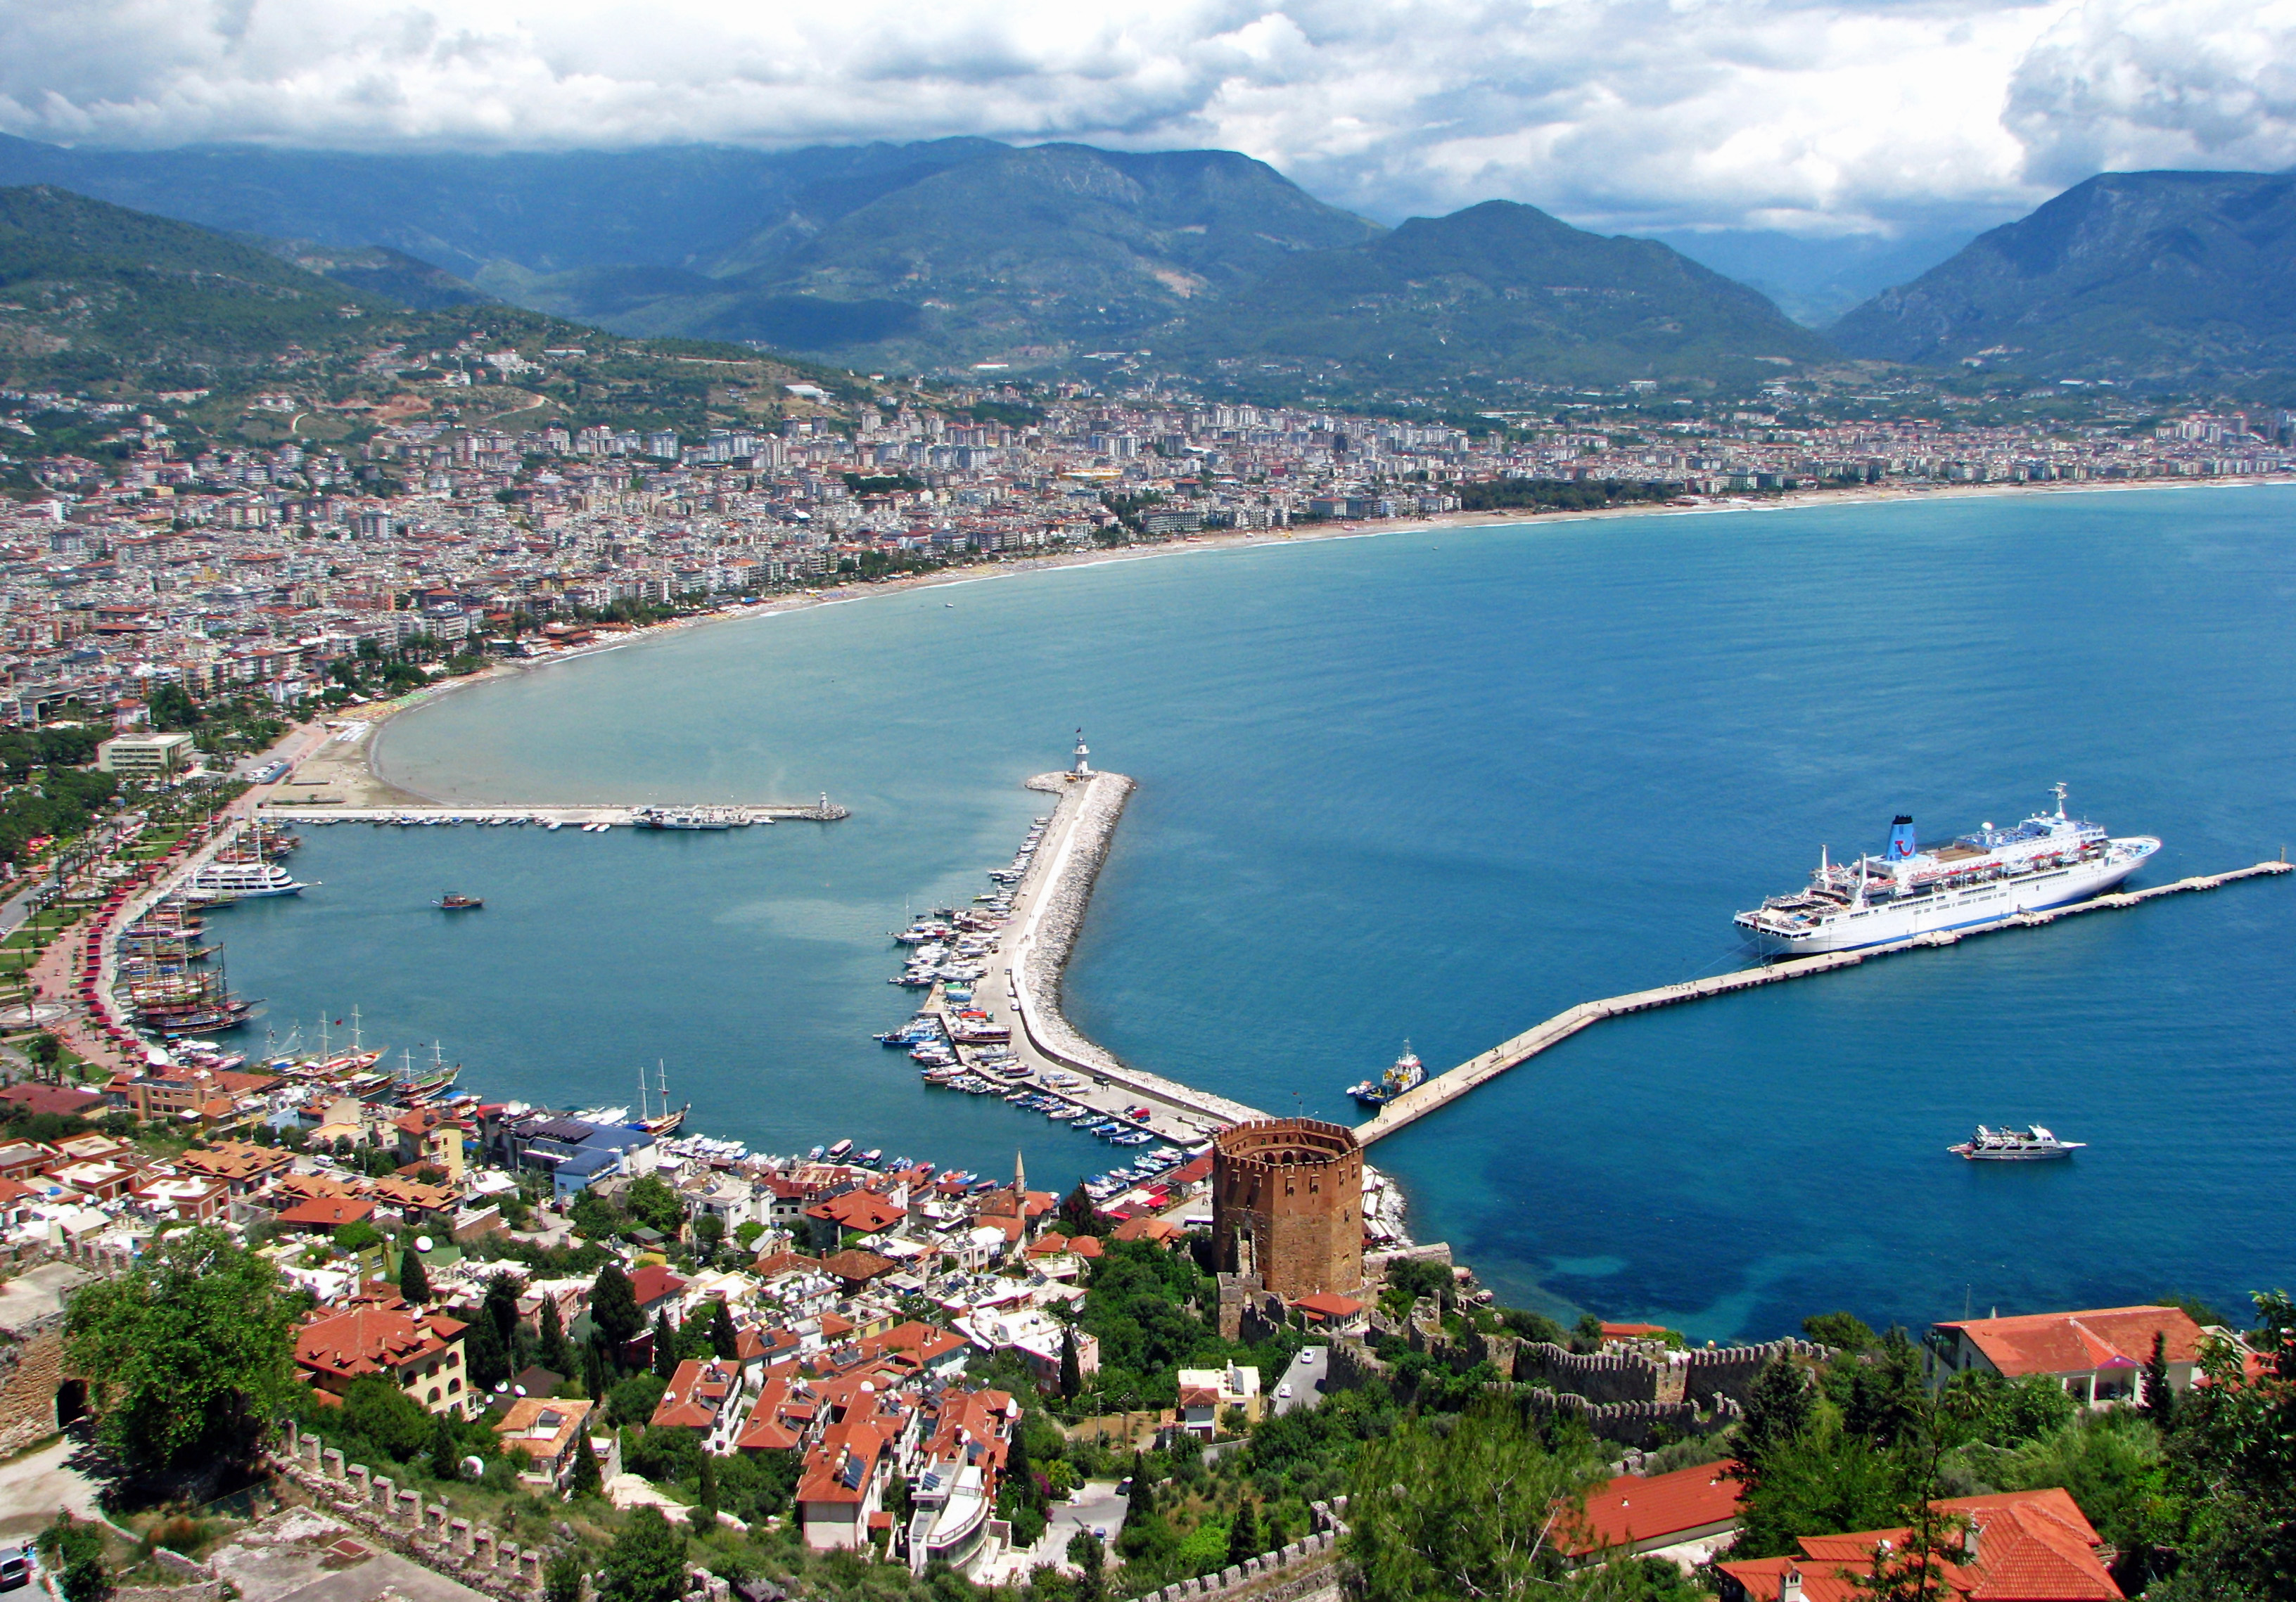 View of the Mediterranean Sea from Alanya castle in Turkey